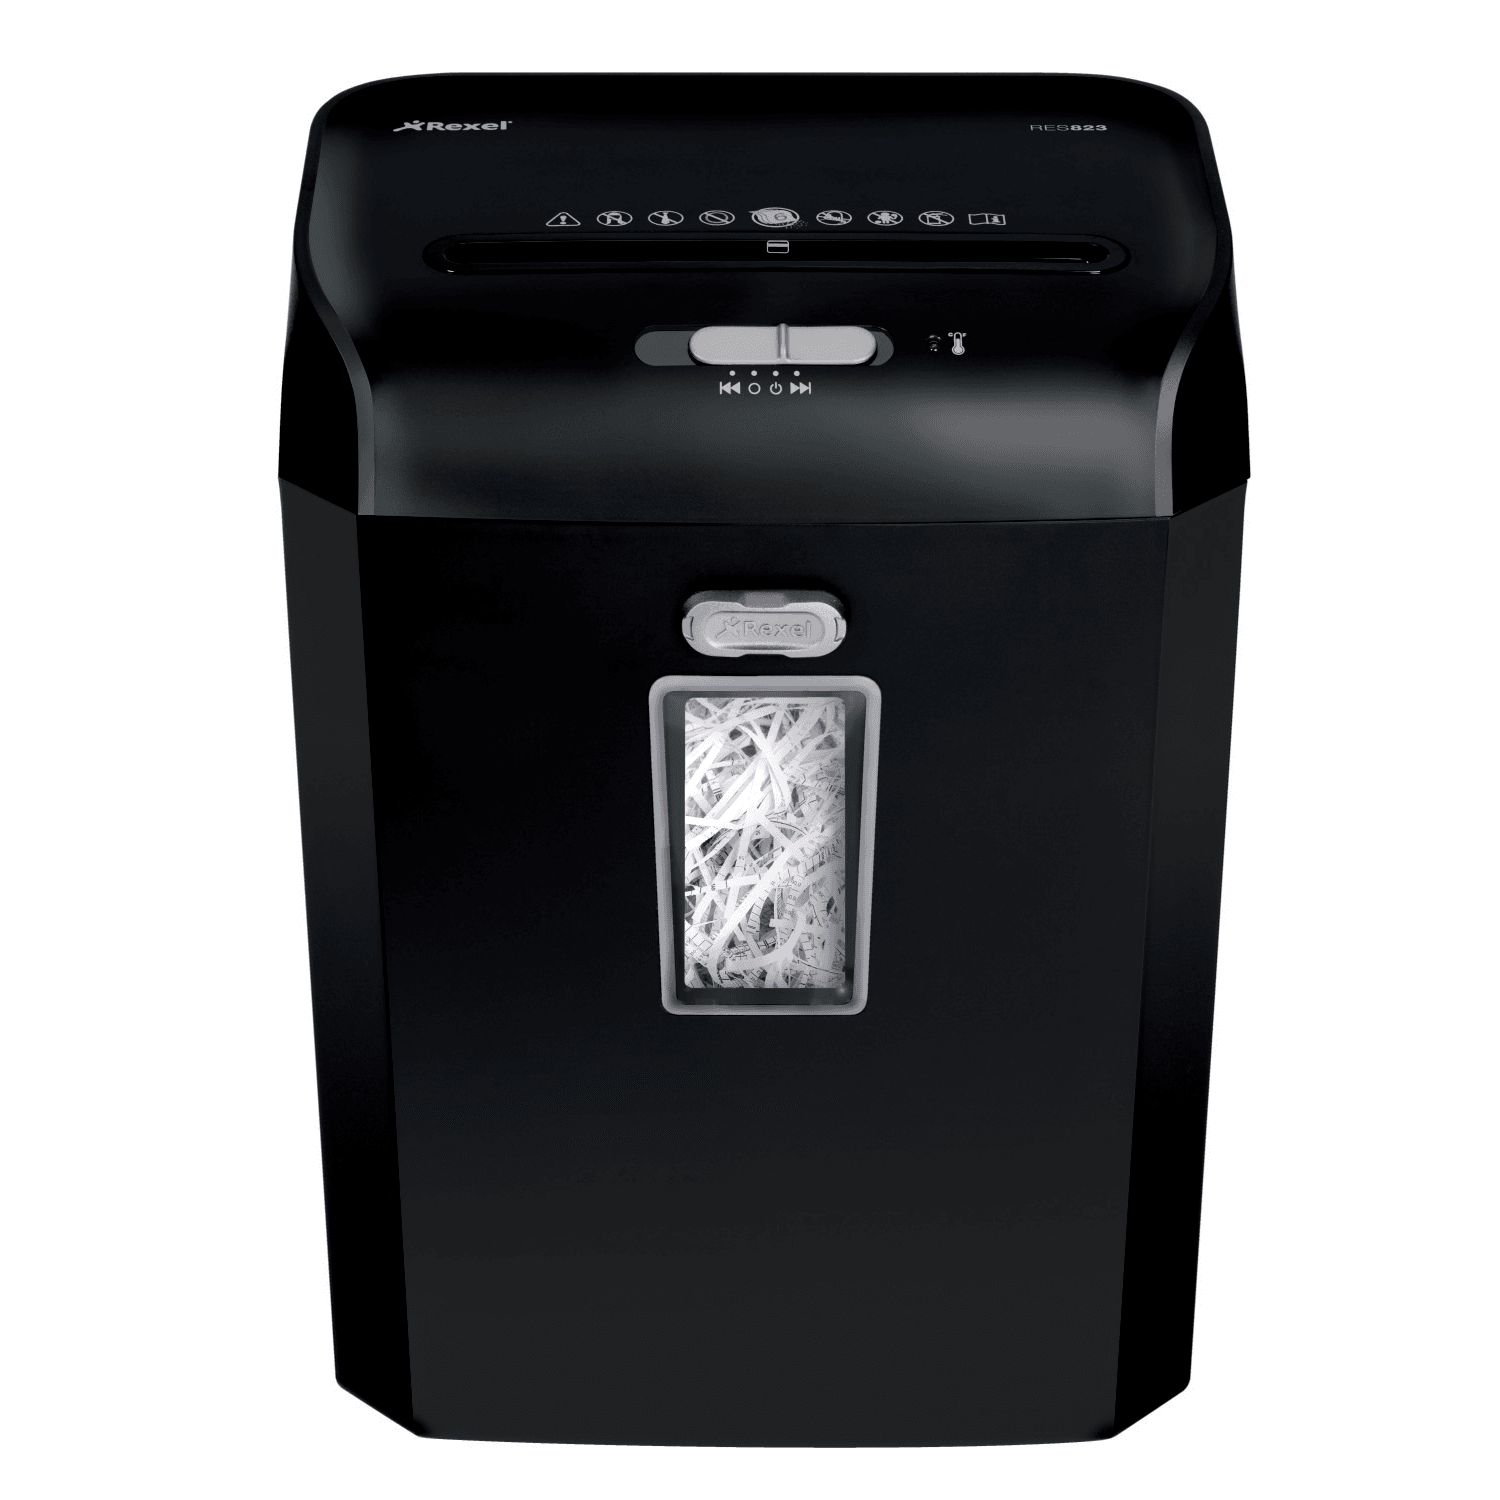 Rexel Promax RES823 Shredder